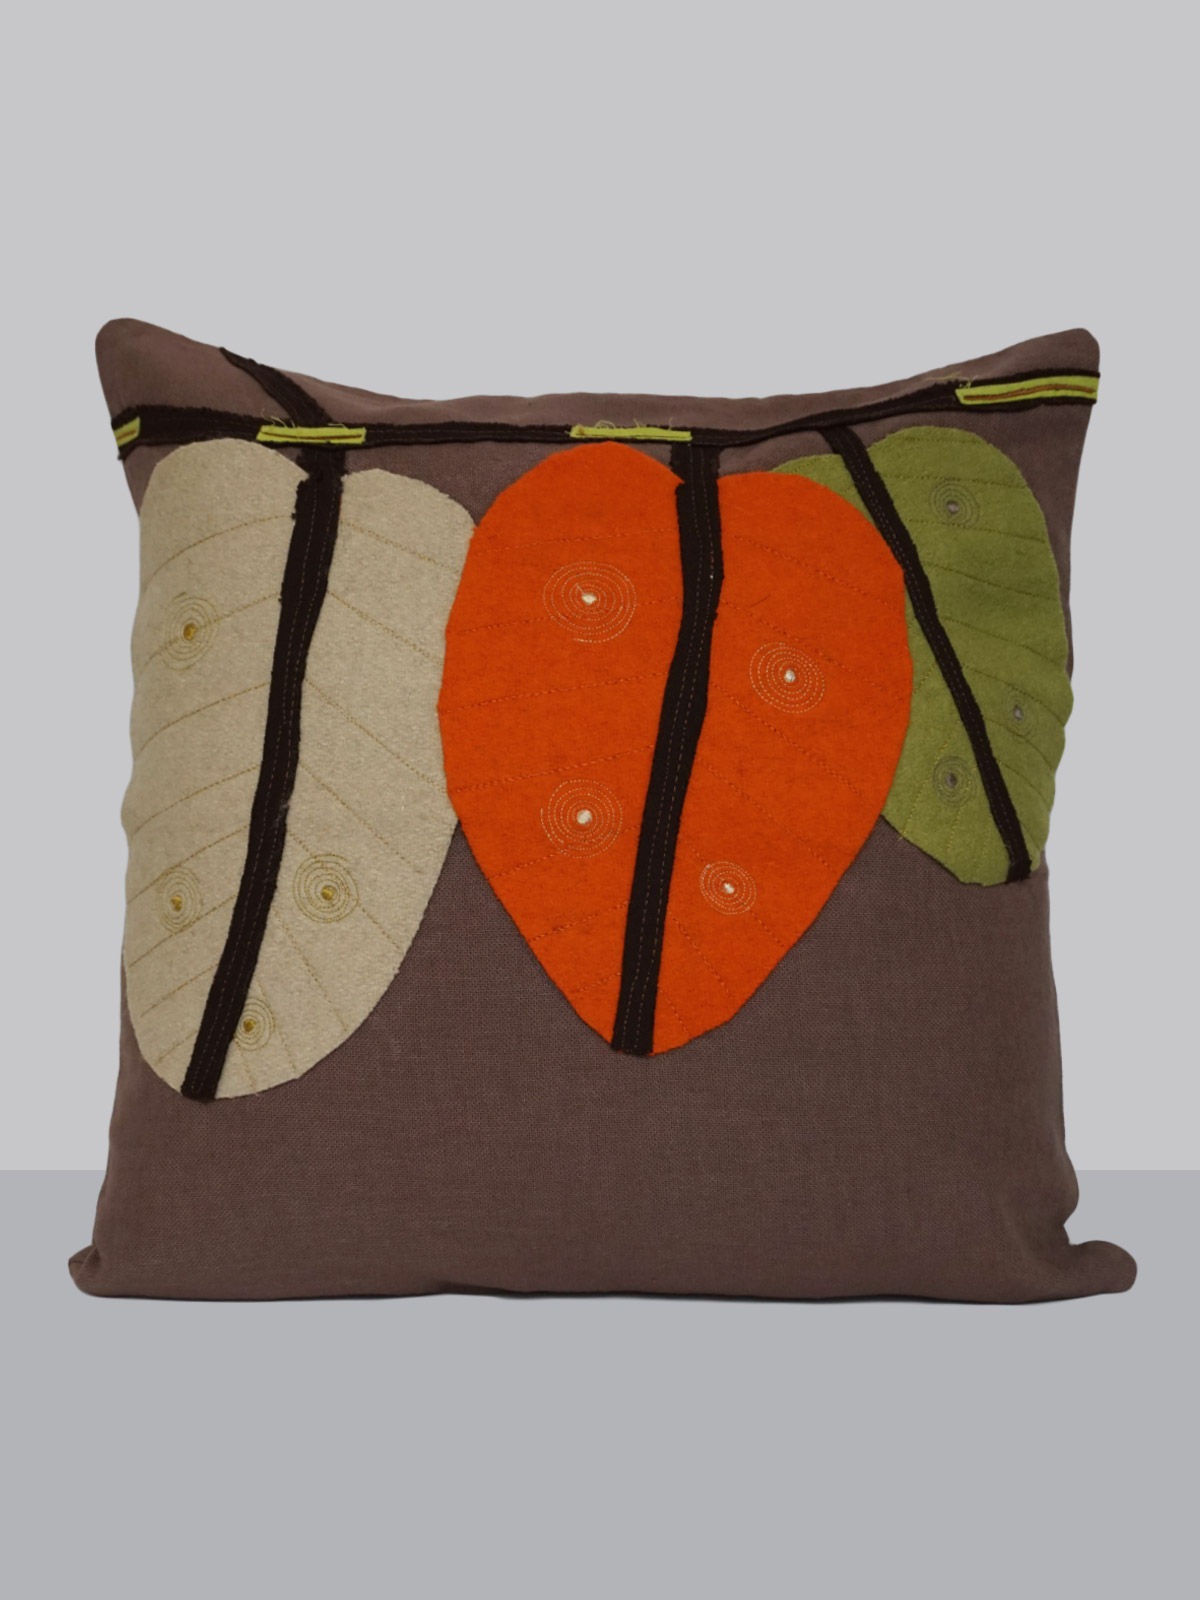 Off-white felt patchwork emroidered bif leaf cotton cushion cover